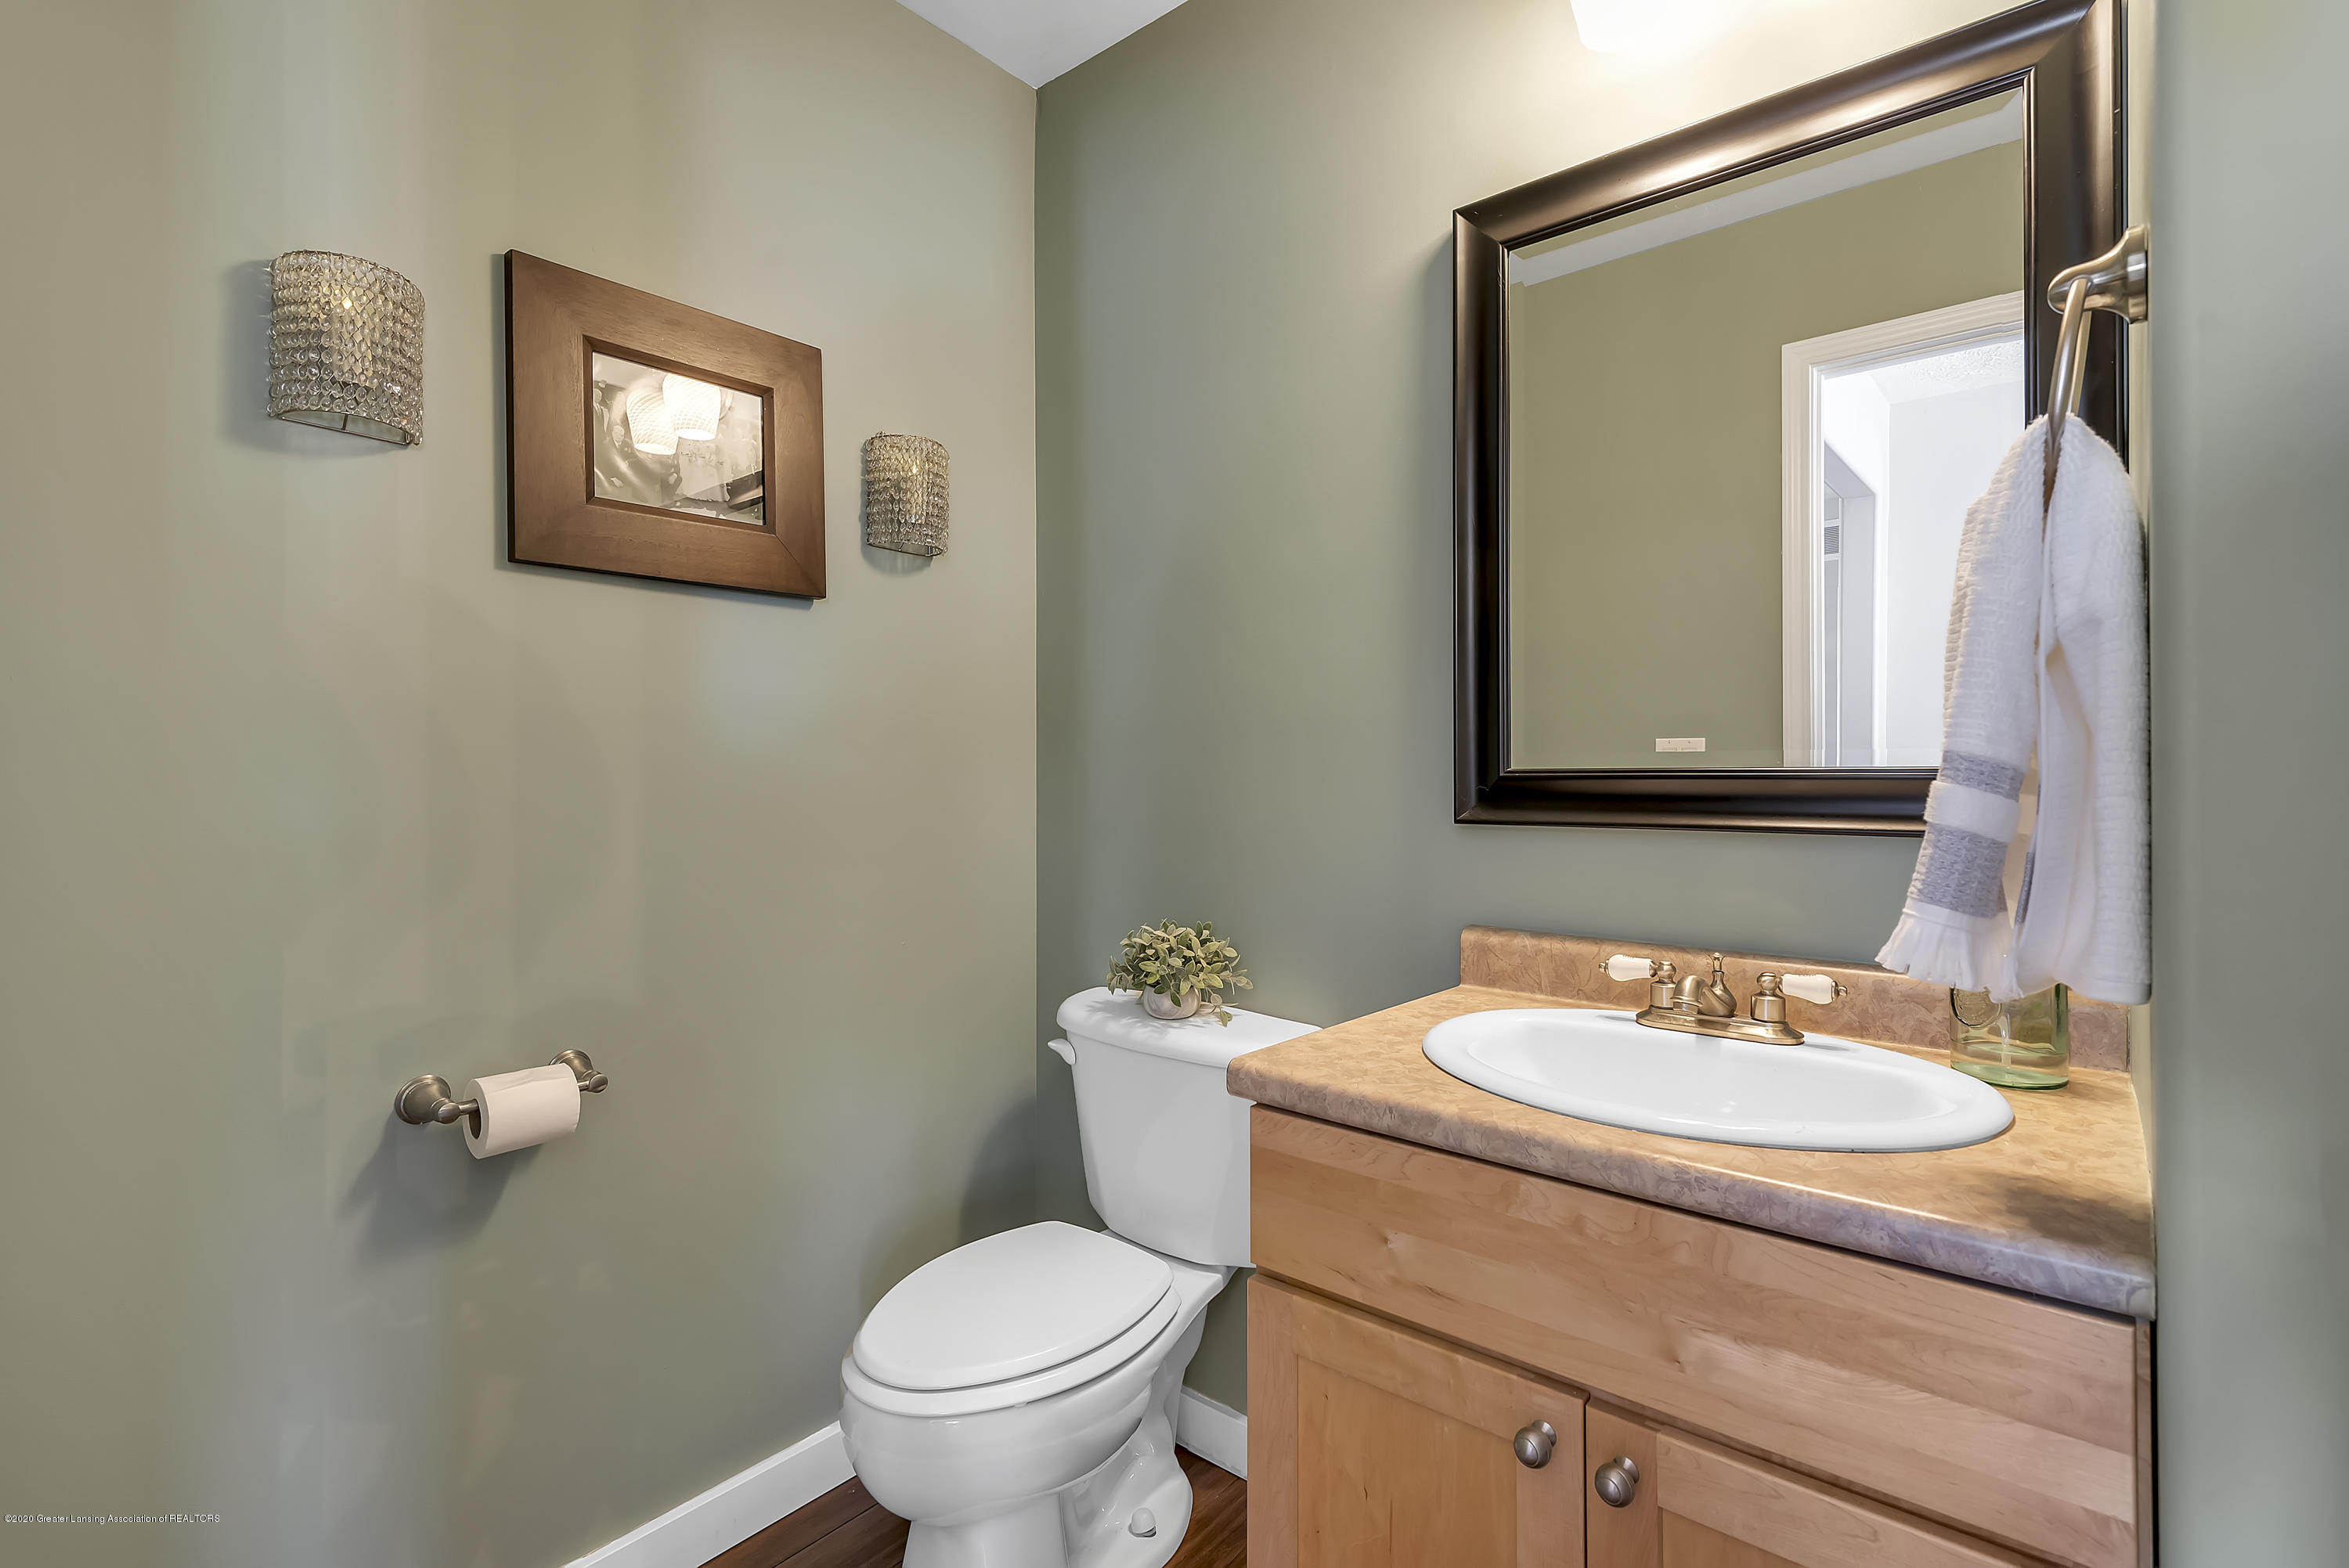 5206 Witherspoon Way - 5206-Witherspoon-Way-WindowStill-Real-Es - 15